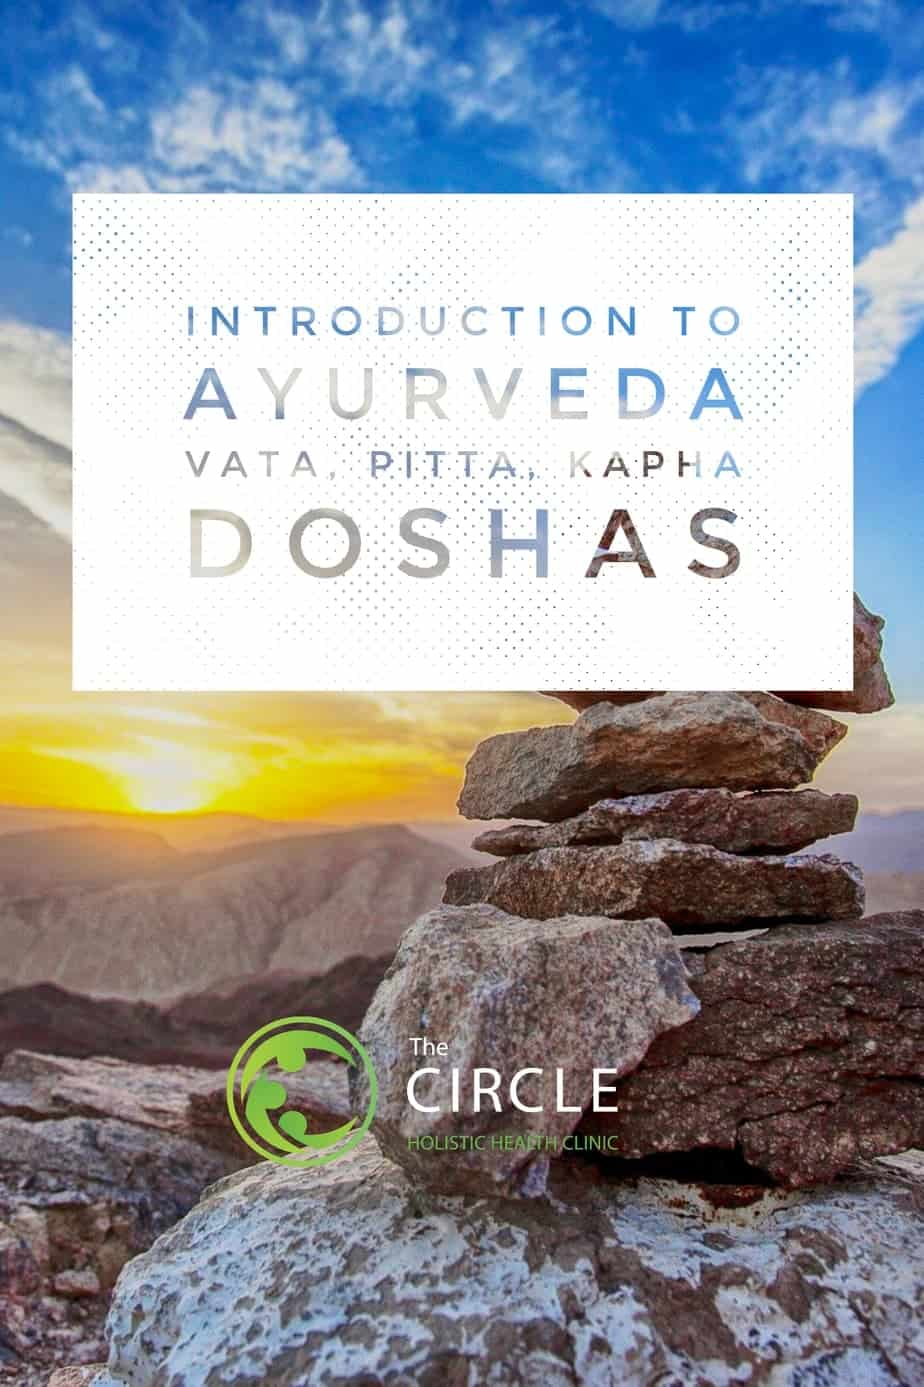 Introduction to Ayurveda Doshas